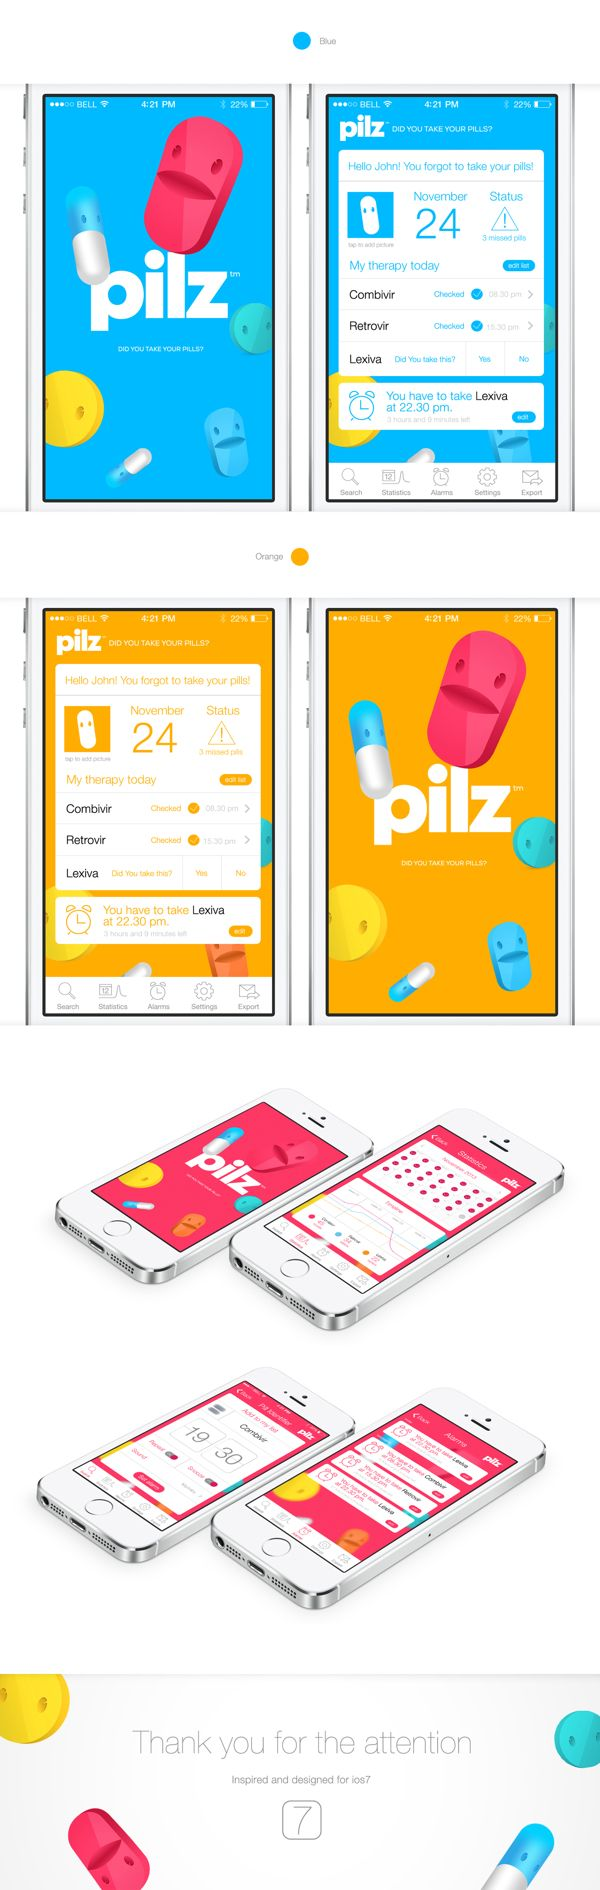 Pilz | iphone app by Kaloyan Rusinov, via Behance